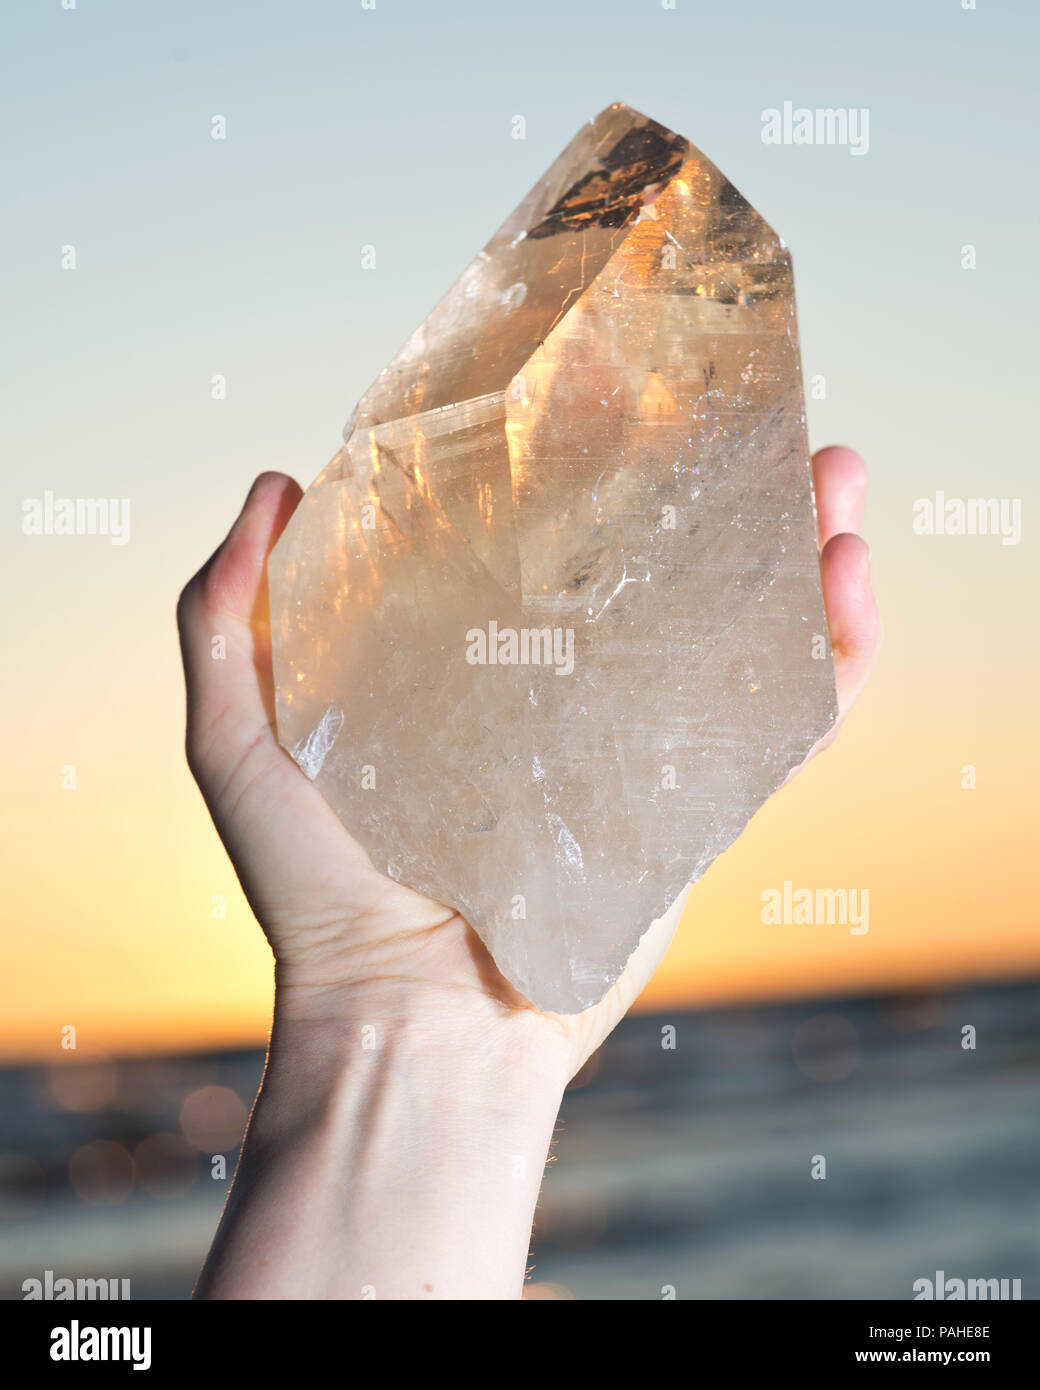 Natural Uncut Citrine Crystal Stock Photos Golden Orange 13ct Woman Holding Huge Cathedral Quartz From Brazil In Her Hand At Sunrise Front